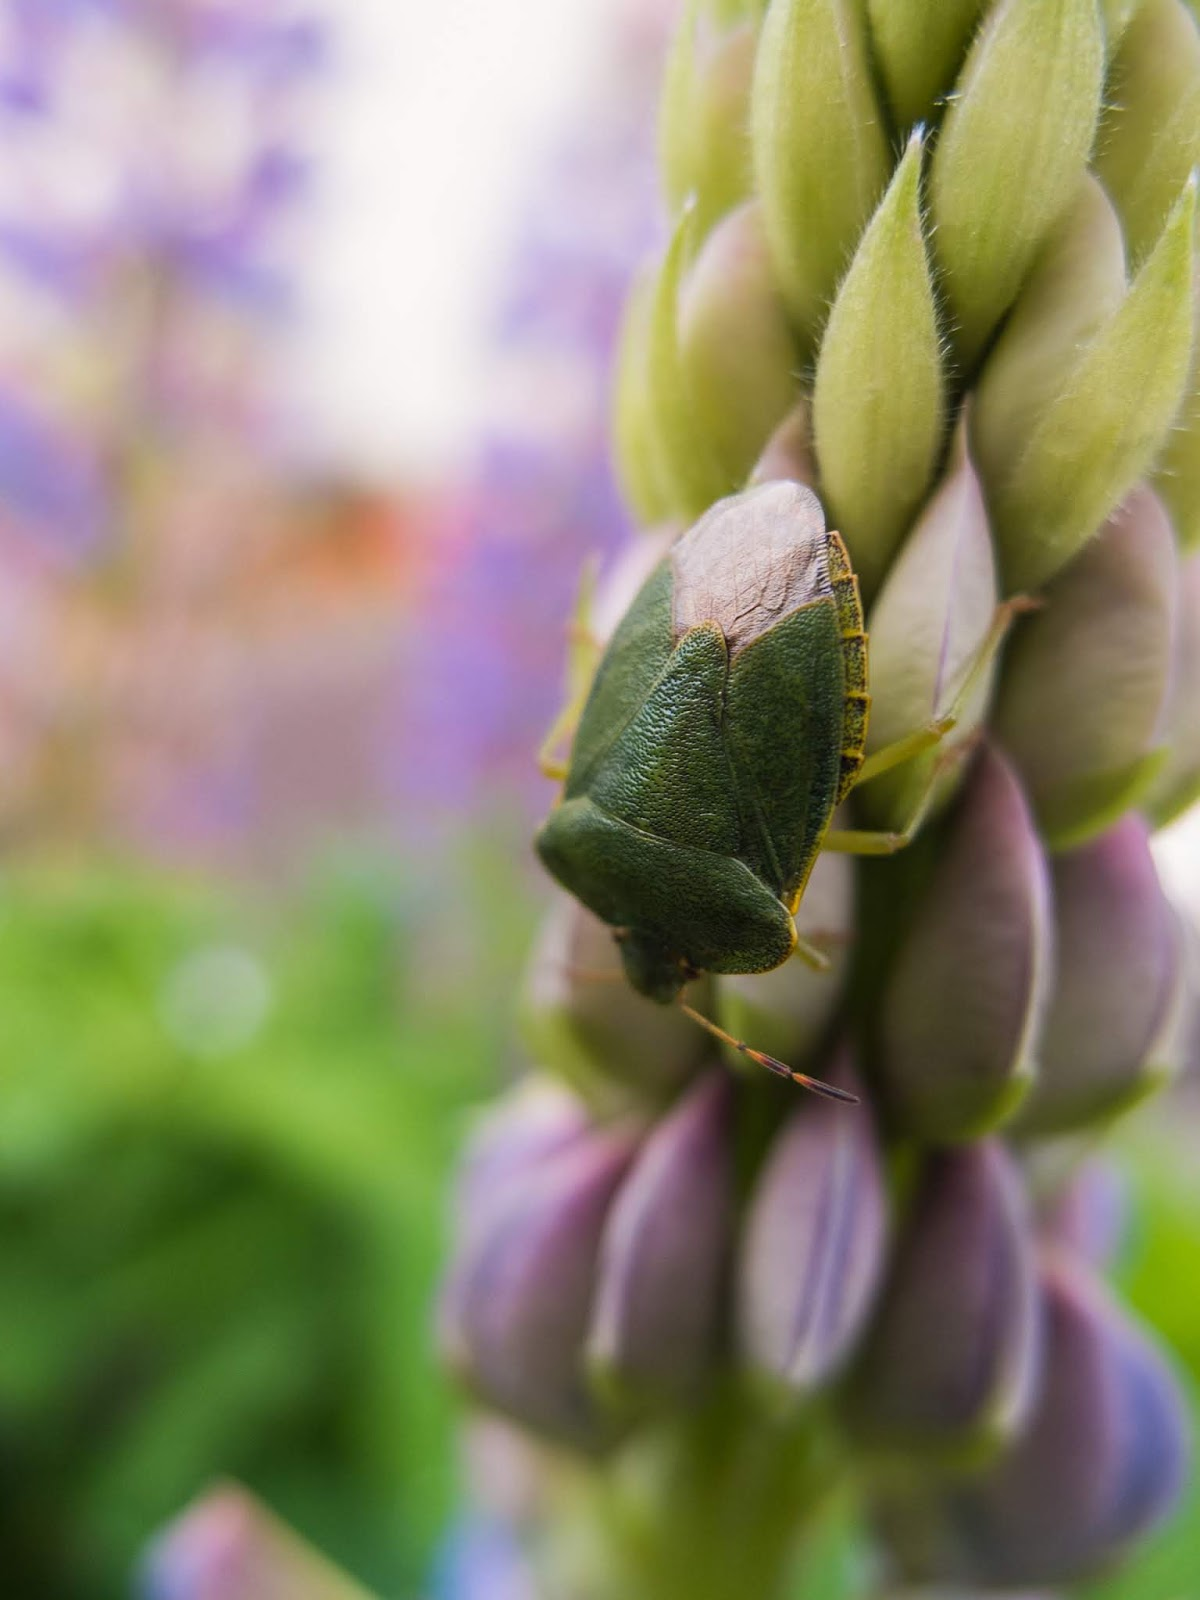 A macro of a Green Stink Bug on a stalk of a light purple Lupine flower.